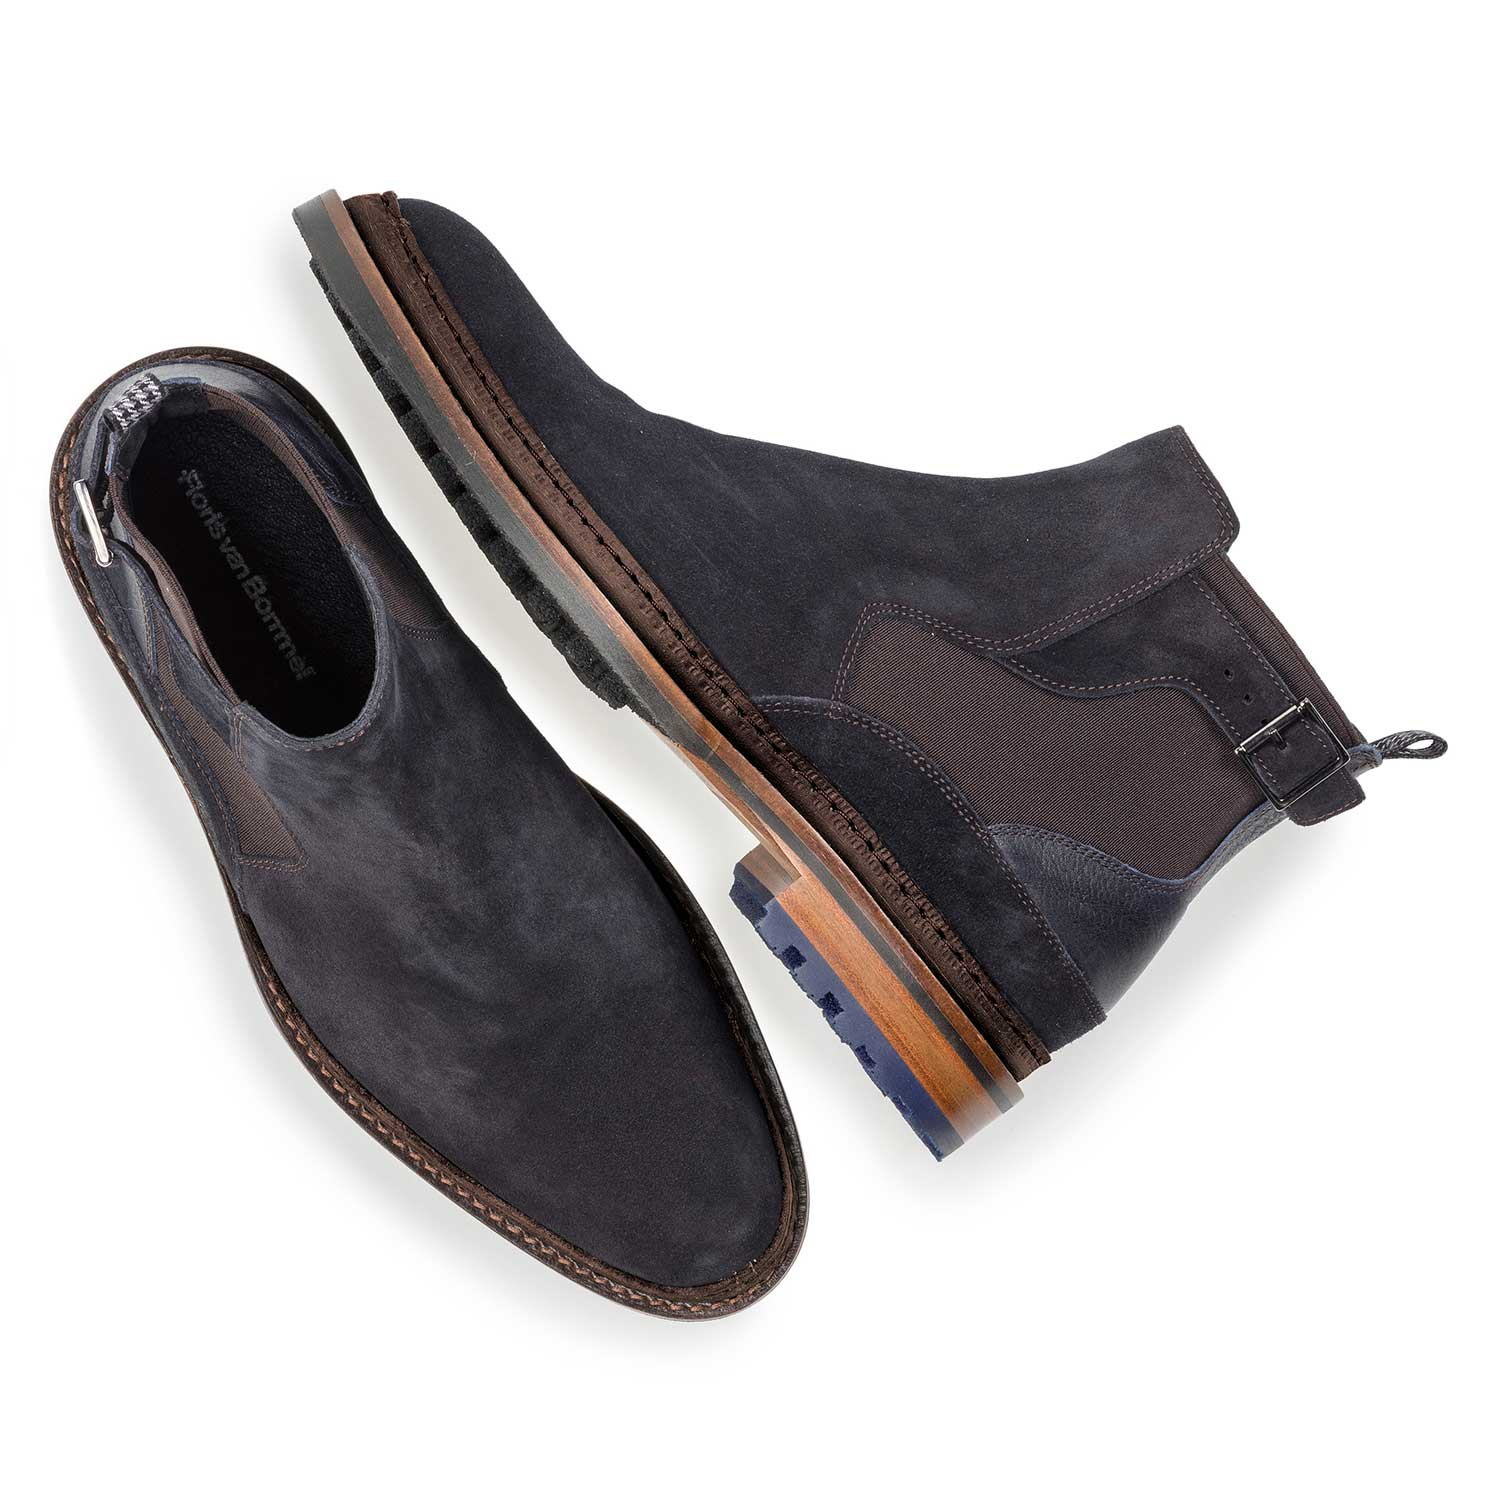 10529/05 - Dark blue suede Chelsea boot